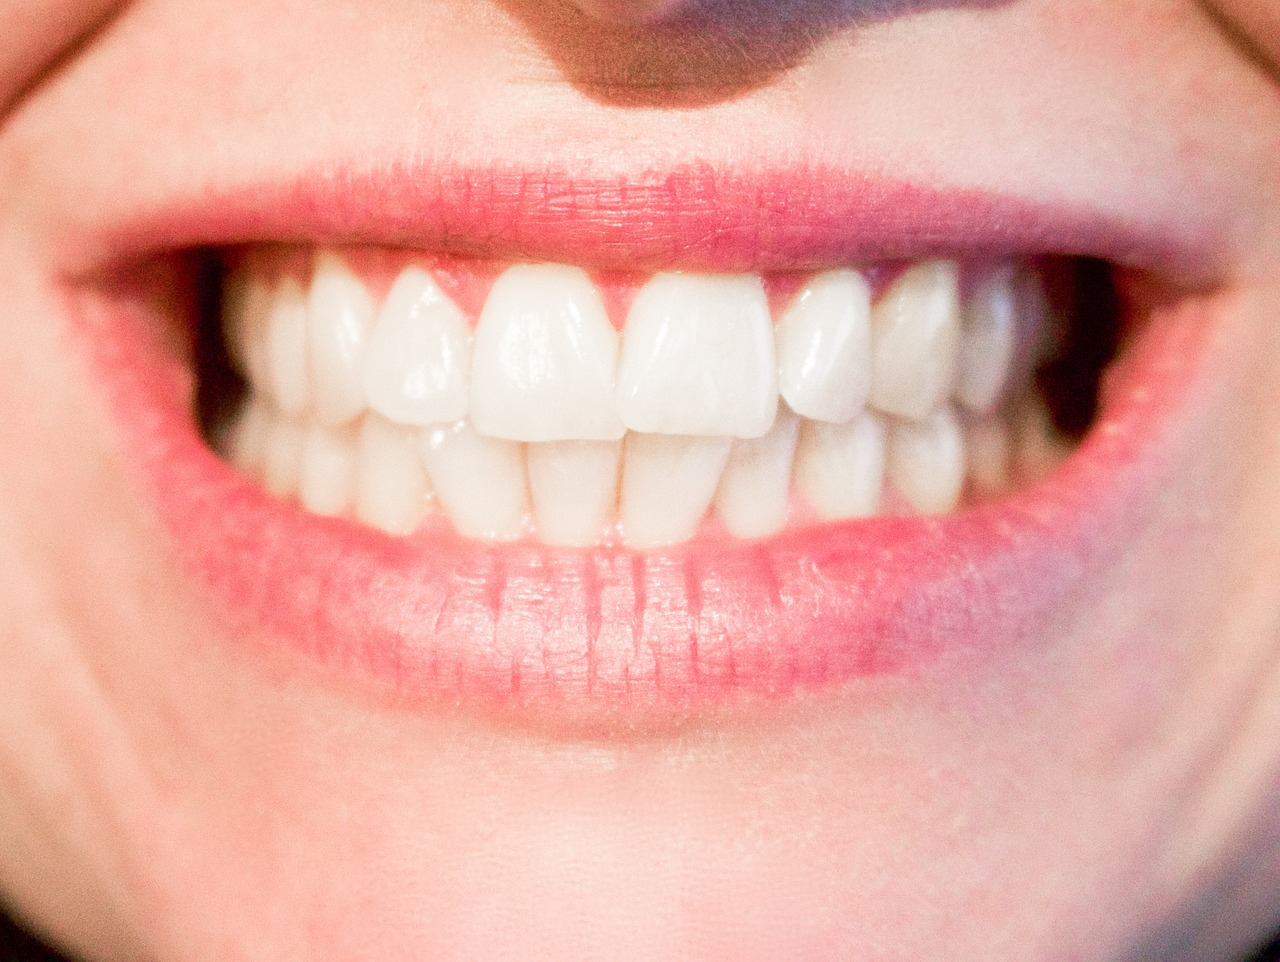 What Are the Causes of a Receding Gum Line?